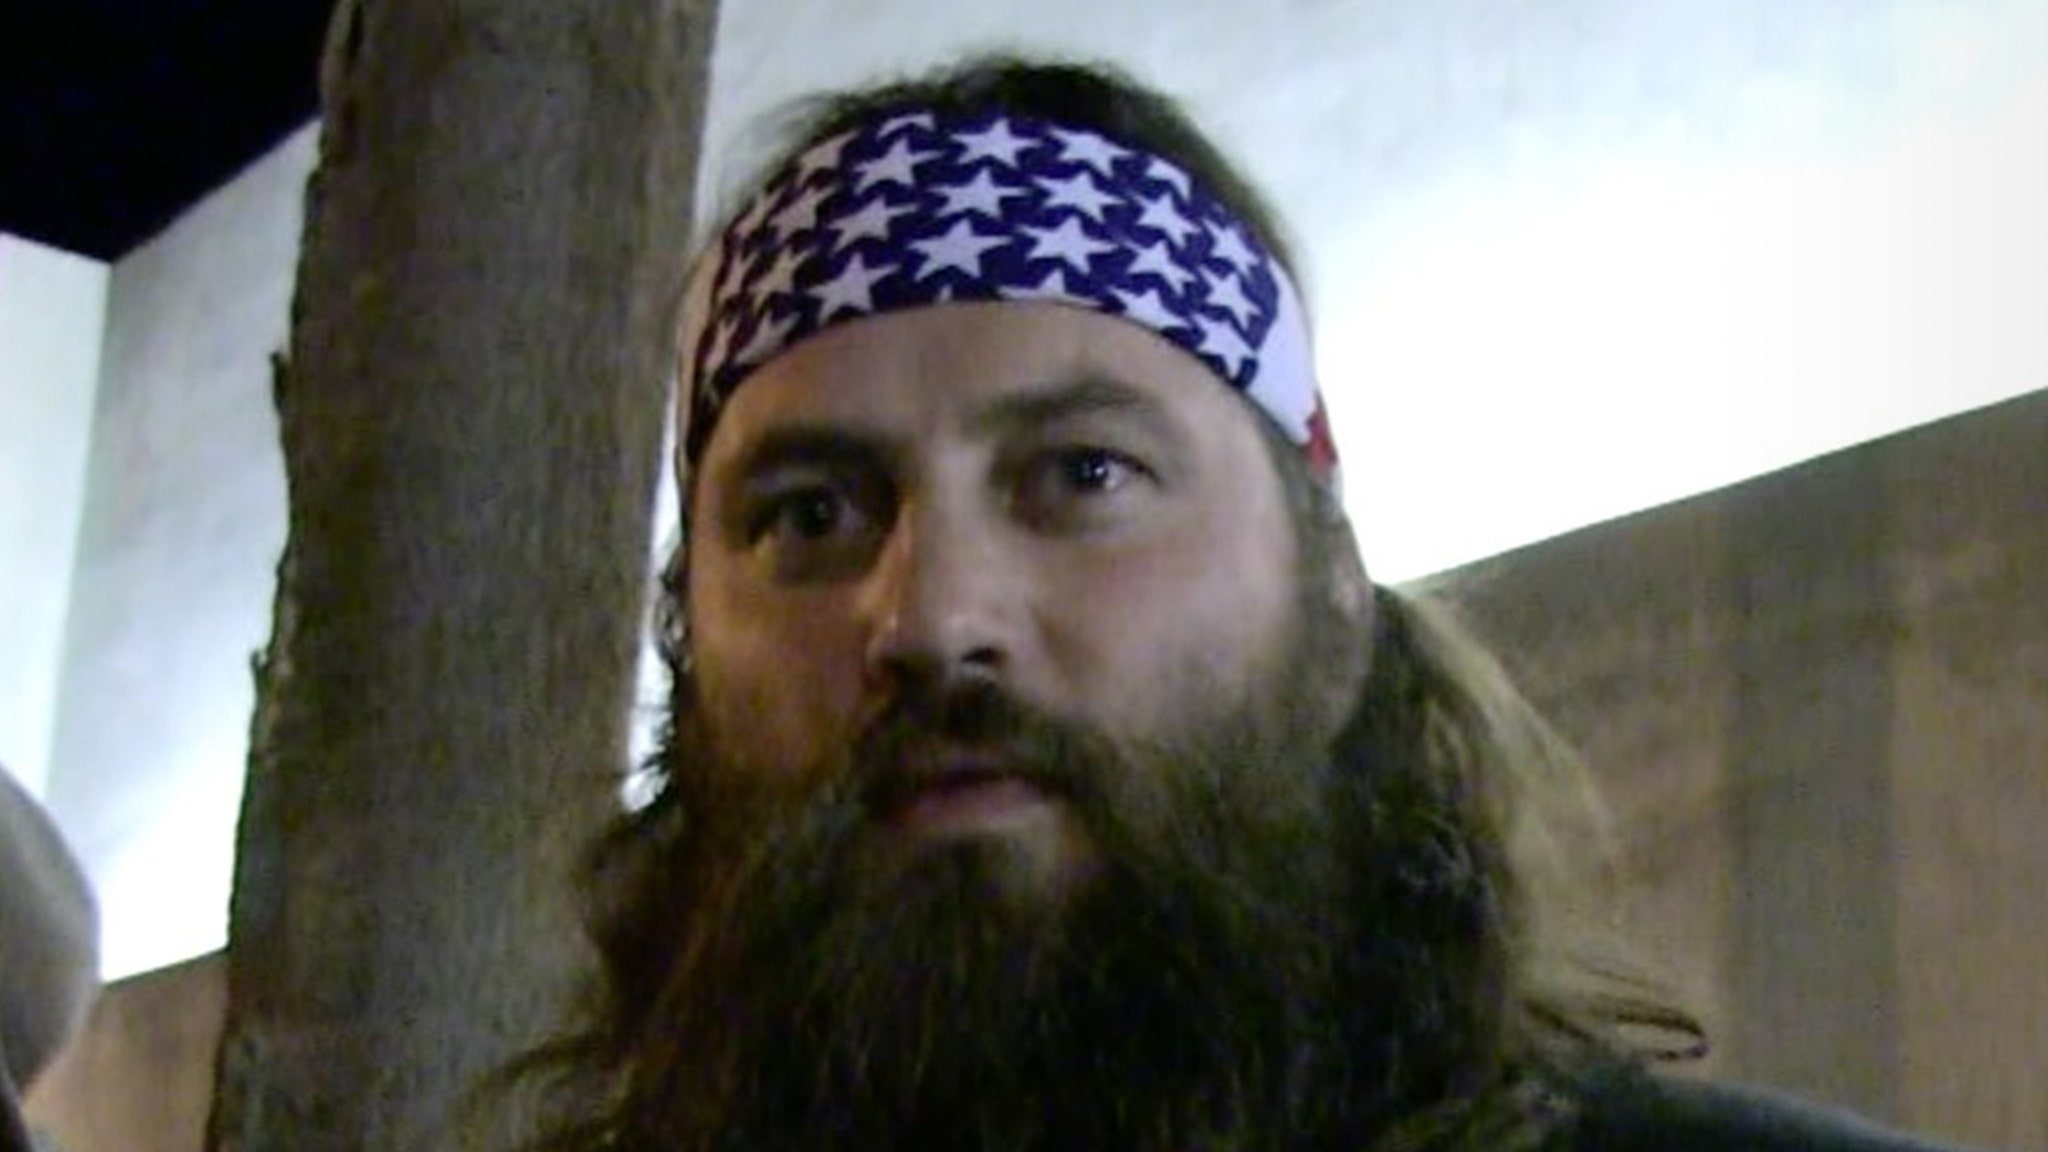 'Duck Dynasty' Willie Robertson Louisiana Home Sprayed w/ Bullets ... In Drive-By Shooting